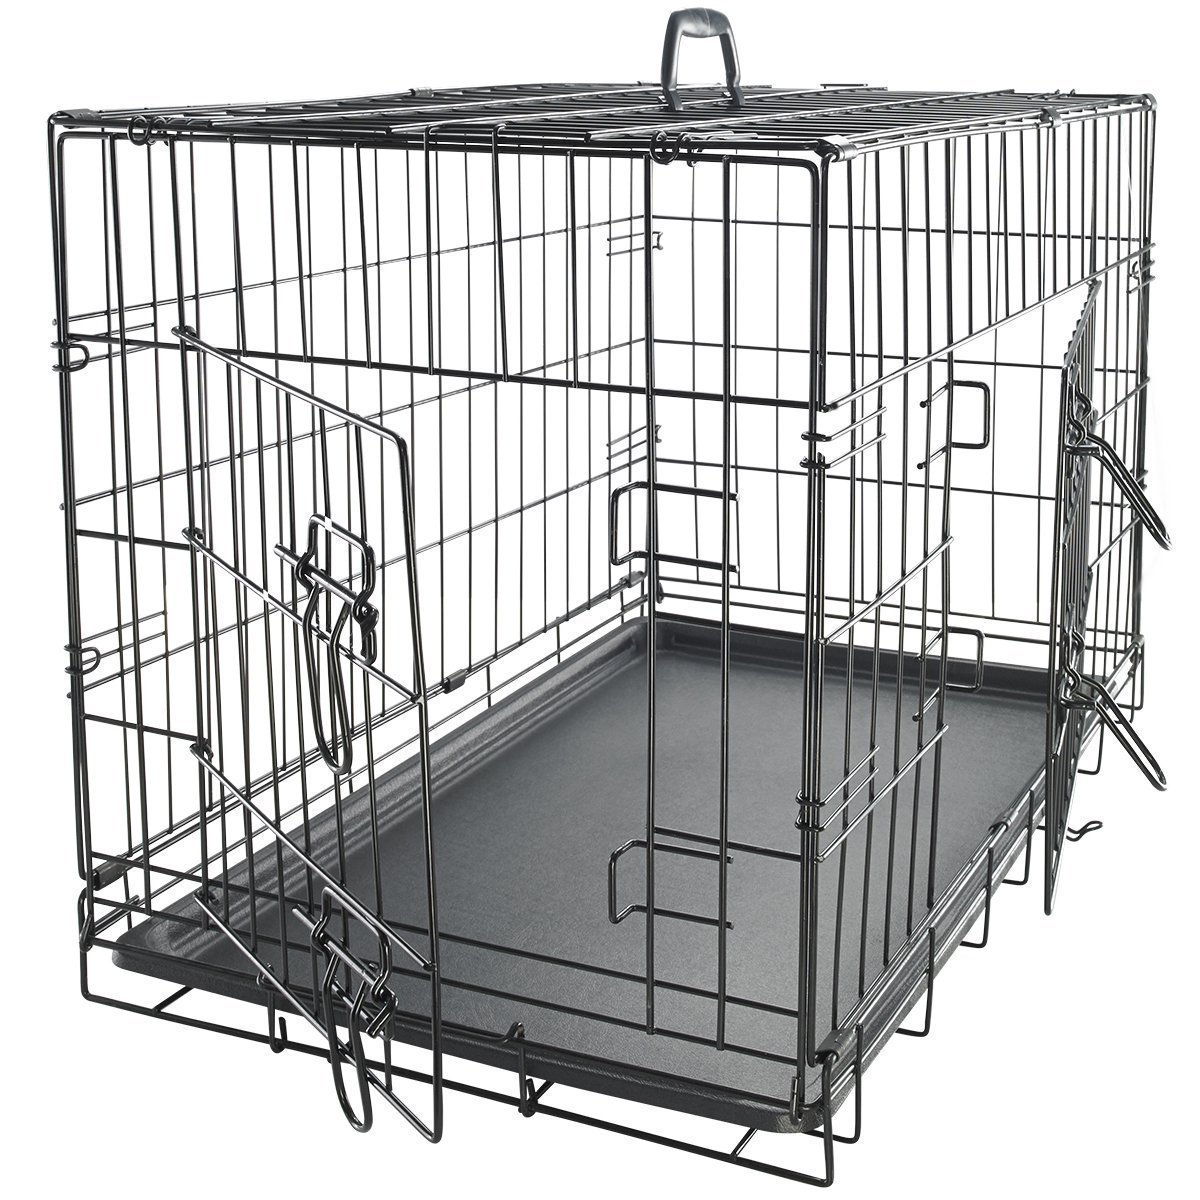 Paws & Pals 48'' XXX-Large Dog Crate Double-Door Folding Metal - Wire Cage w/Divider & Tray for Training Pets - 48'' x 29'' x 32'' - 2019 Newly Designed Model by Paws & Pals